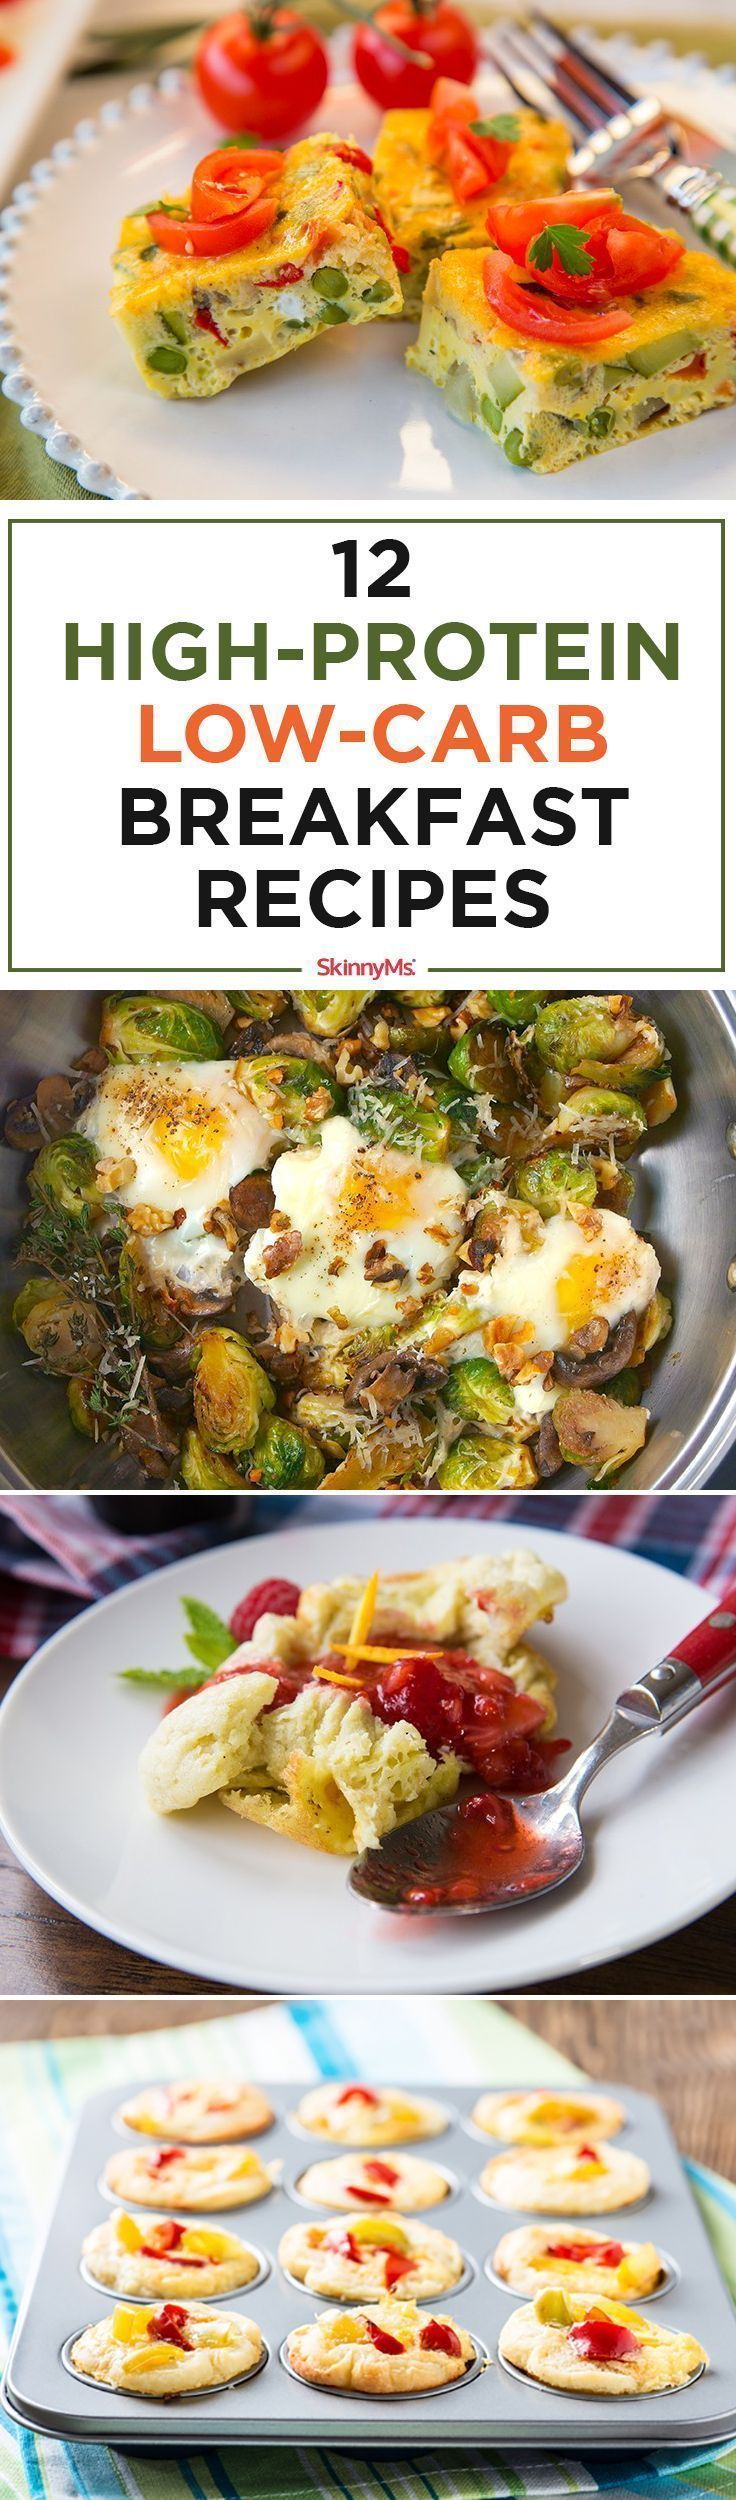 Try these 12 High-Protein Low-Carb Breakfast Recipes. Full of heart healthy fats, lean protein, and filling fiber to stave off hunger all morning long!